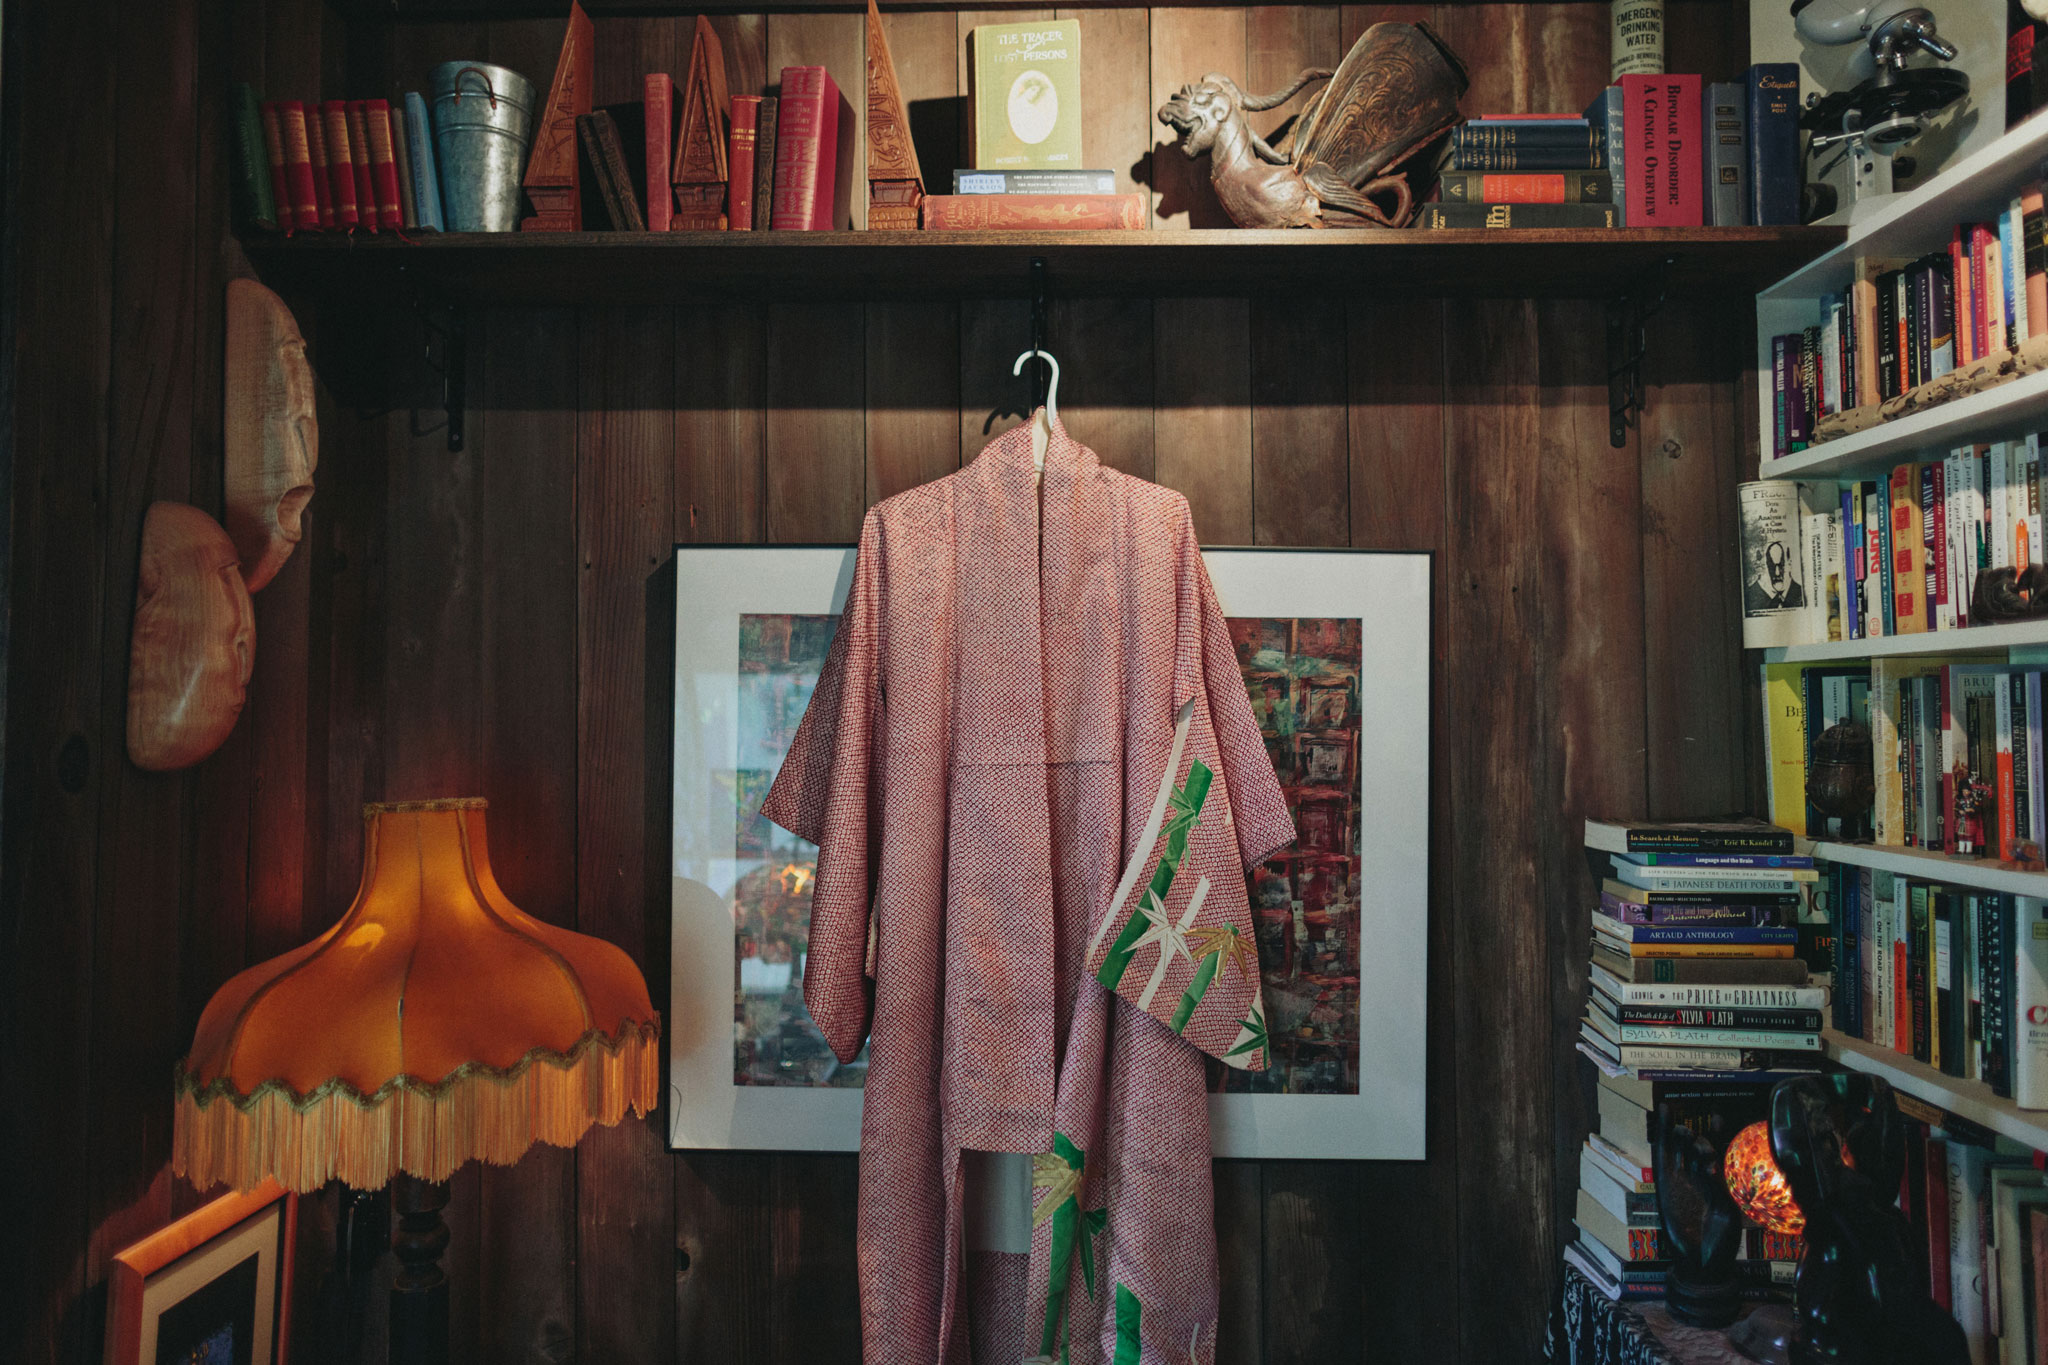 Pink and green kimono and haori hanging in a woodpanelled room with bookshelves